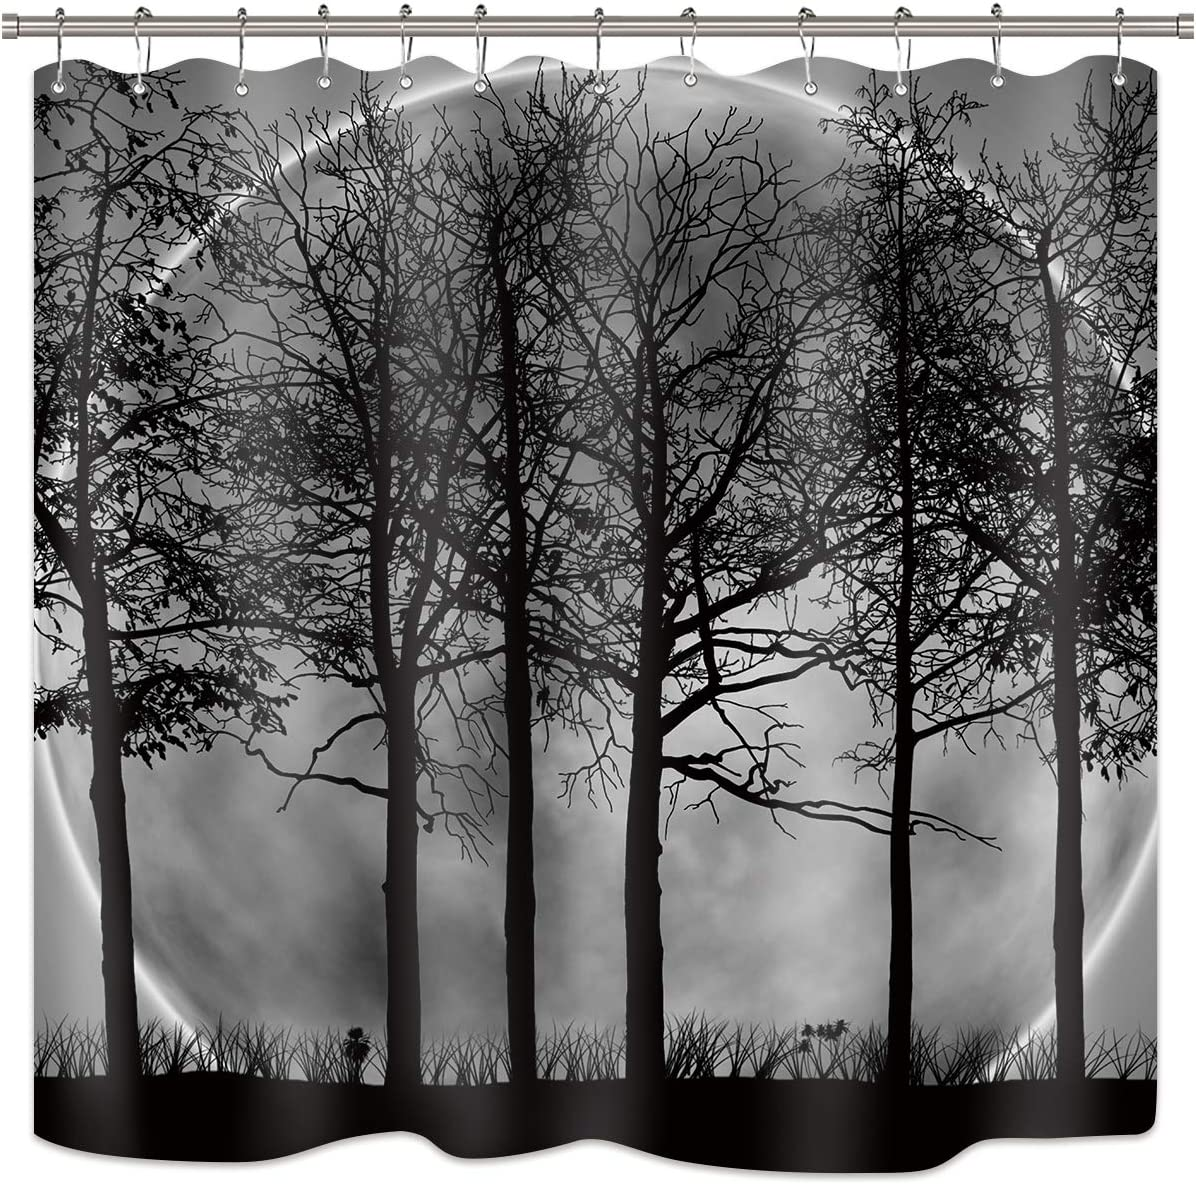 """Riyidecor Black and White Trees Moon Shower Curtain Abstract Gothic Gross Shadow Dark Landscape Gray Art Printed Fabric Waterproof Home Bed Bathtub Decor 12-Pack Plastic Shower Hooks (72"""" W x 72"""" H)"""